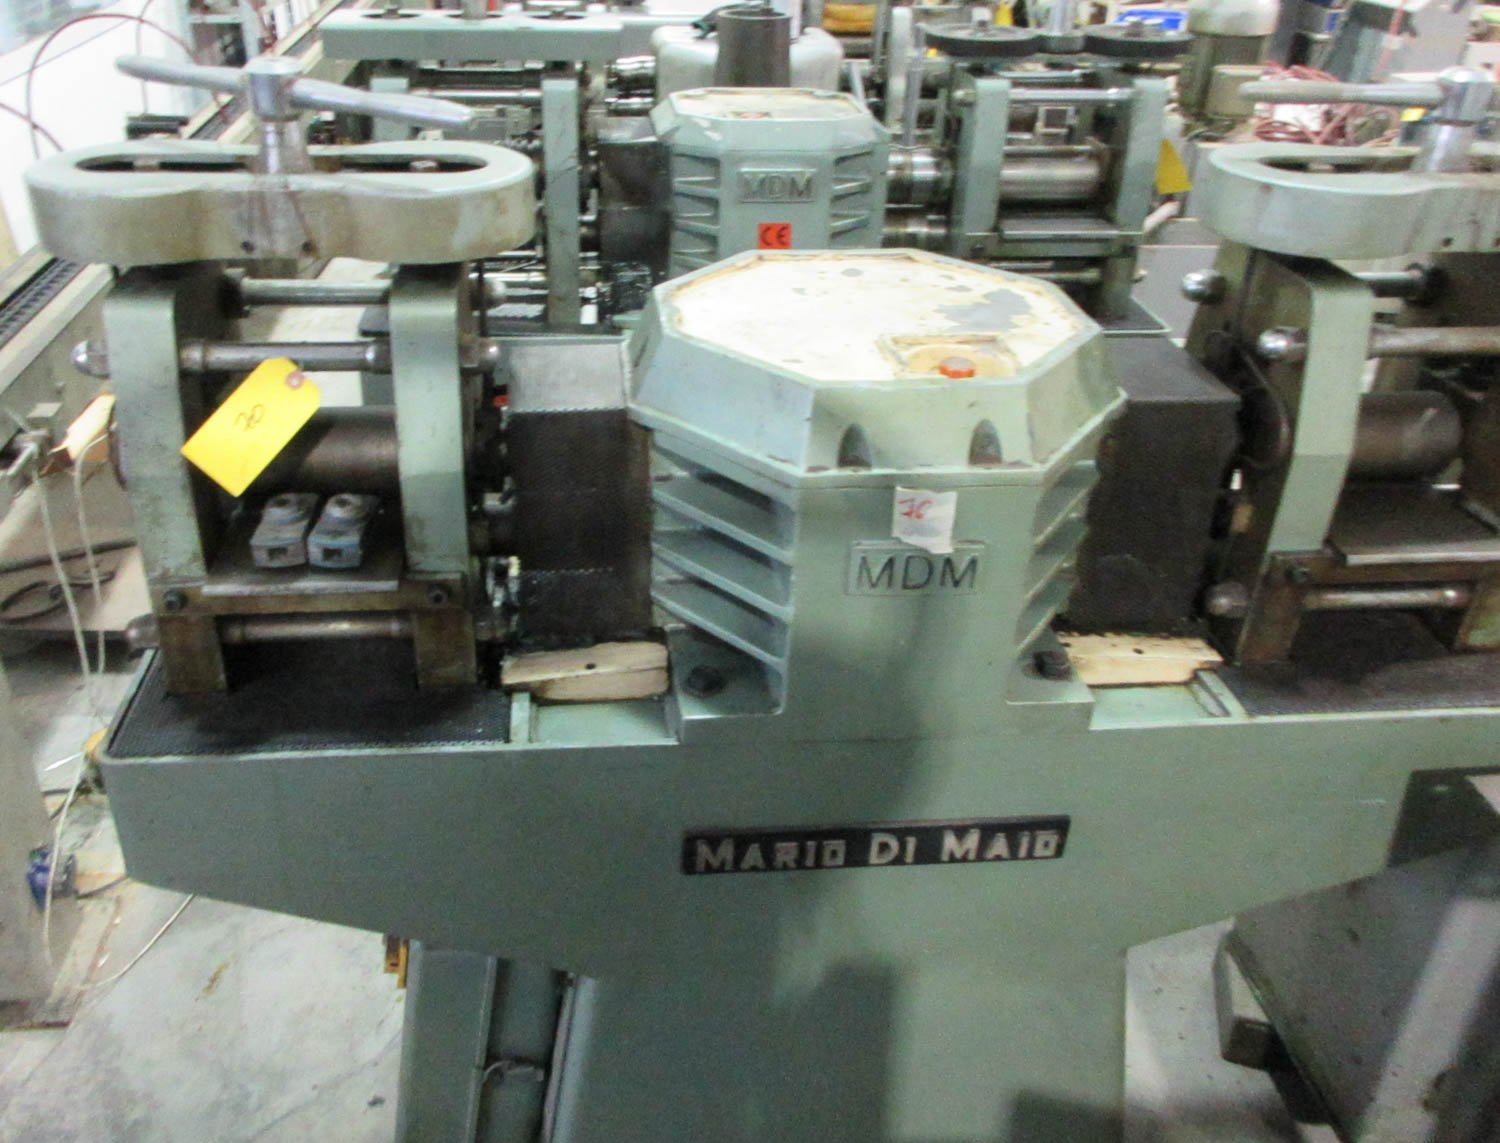 MARIO DI MAIO MDL. GLY60 AMBIL DOUBLE ROLLING MILL FOR PLATE AND WIRE REDUCTION; DOUBLE-SIDED PRESS; - Image 2 of 3